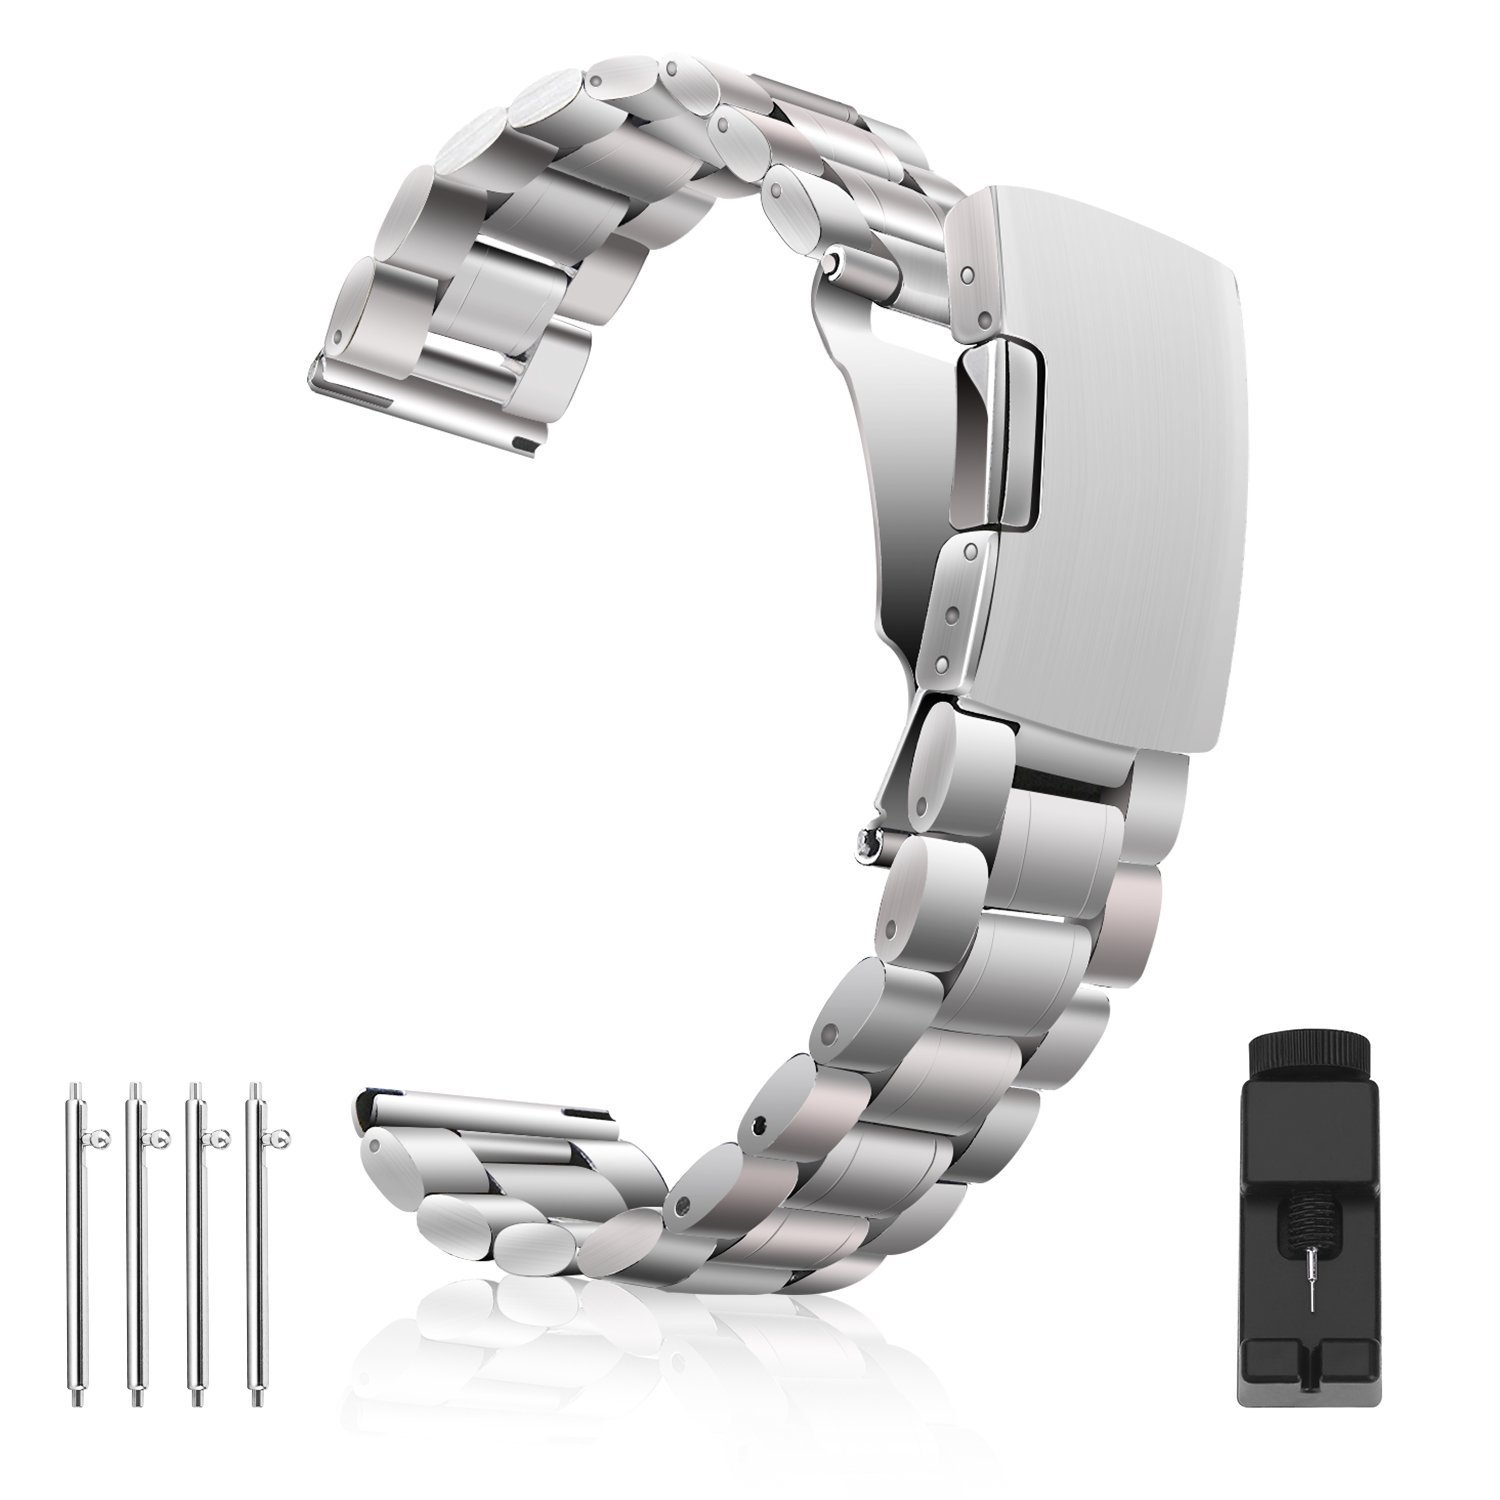 Vetoo 304 Stainless Steel 18mm Watch Bands for Moto 360 2nd Gen 46mm,Pebble Time,Time Steel,Classic,ASUS ZenWatch WI500Q,WI501Q,Samsung Gear 2 R380,Neo R381,Live R382,LG G Watch W104,Urbane, RoseGold